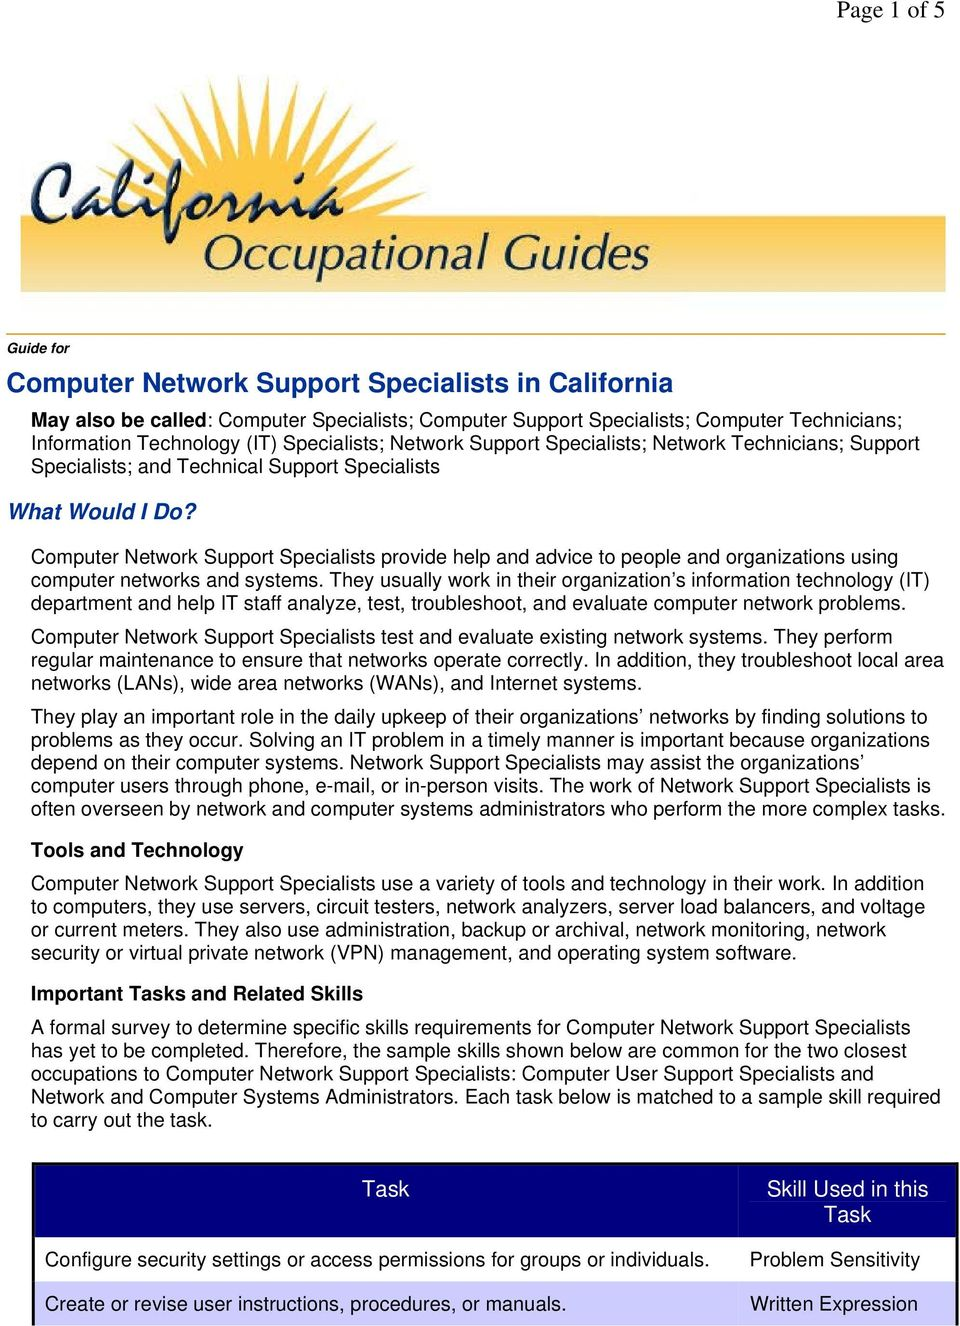 Computer Network Support Specialists provide help and advice to people and organizations using computer networks and systems.